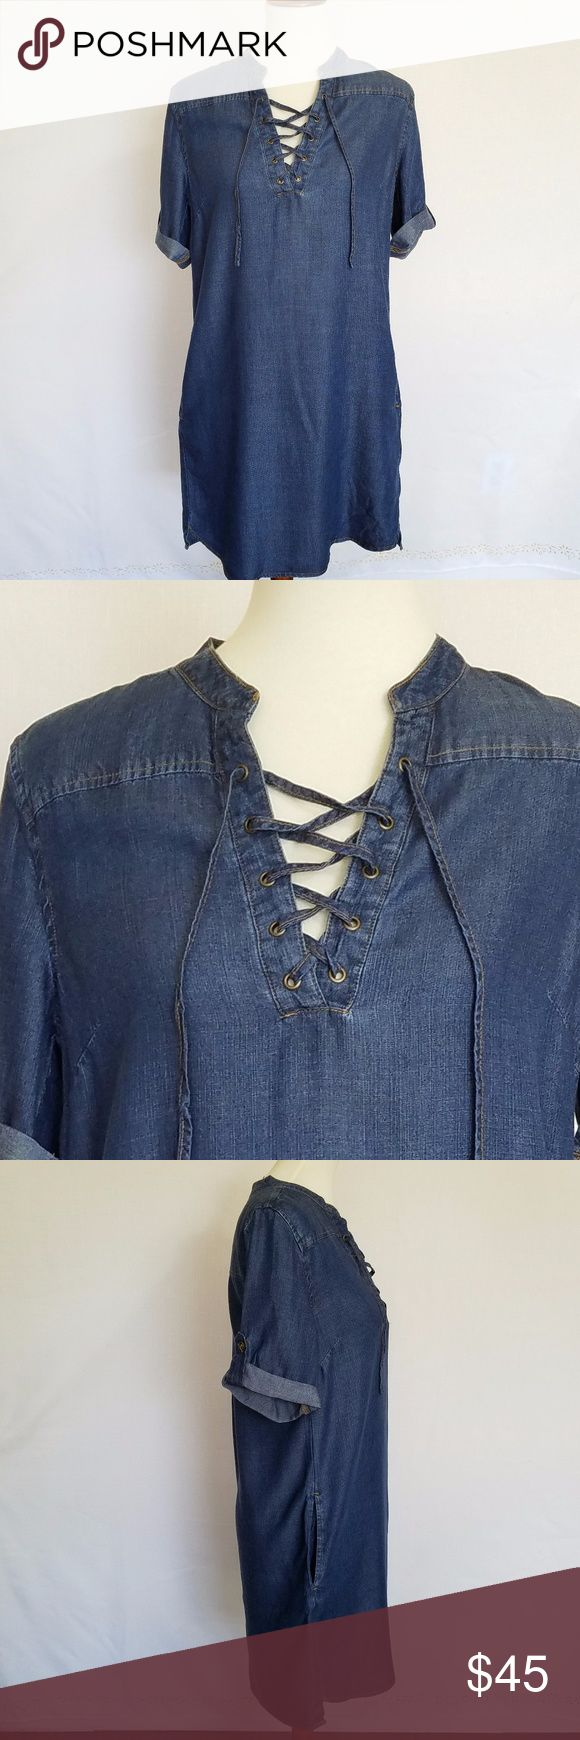 Philosophy Tencel Lace Up Denim Dress size S NWT NWT Philosophy Tencel Lace Up Denim Chambray Dress size S NWT 3/4 sleeve.Roll tab sleeves Stylish front lace up closure 2 Side seam pockets,  Slight high-low hemline, Bottom hem side slits Environmentally friendly 100% Tencel Lyocell fabric Philosophy Dresses Mini